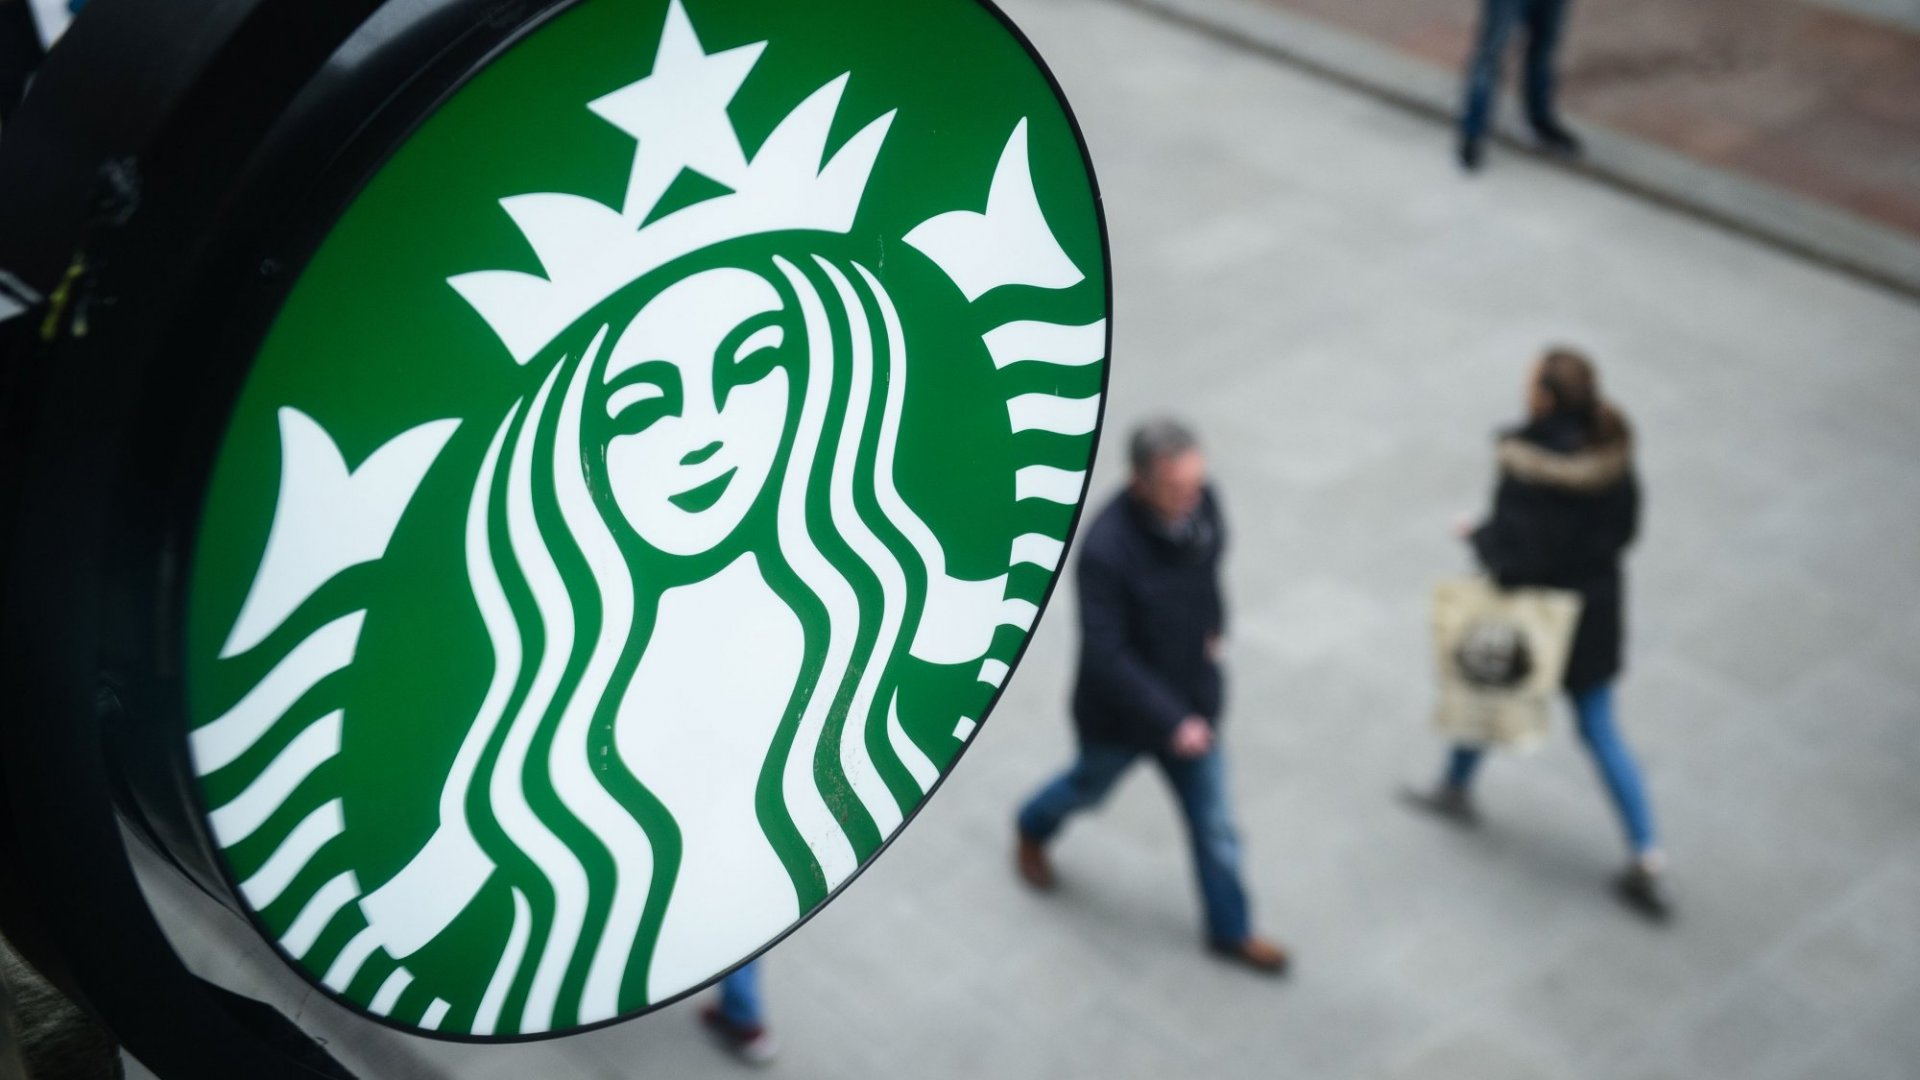 Starbucks Makes a Major Change to Its Holiday Cups This Year to Keep More People Happy